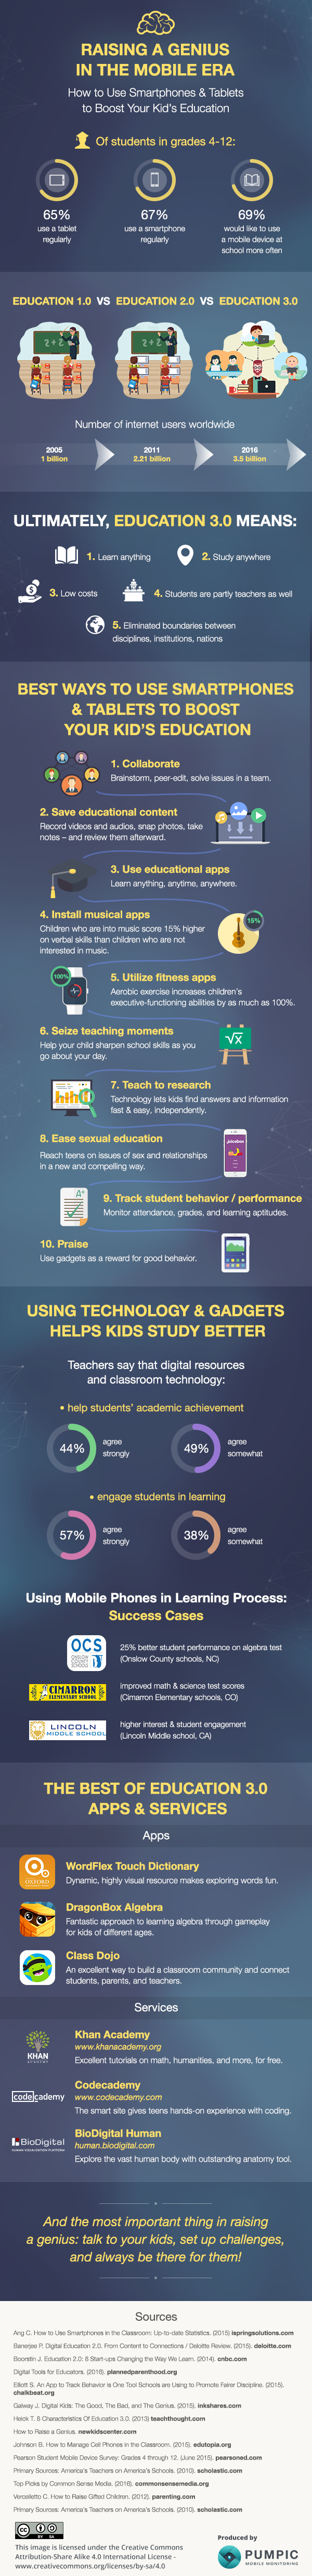 10 ways to use mobile technology to boost kids learning